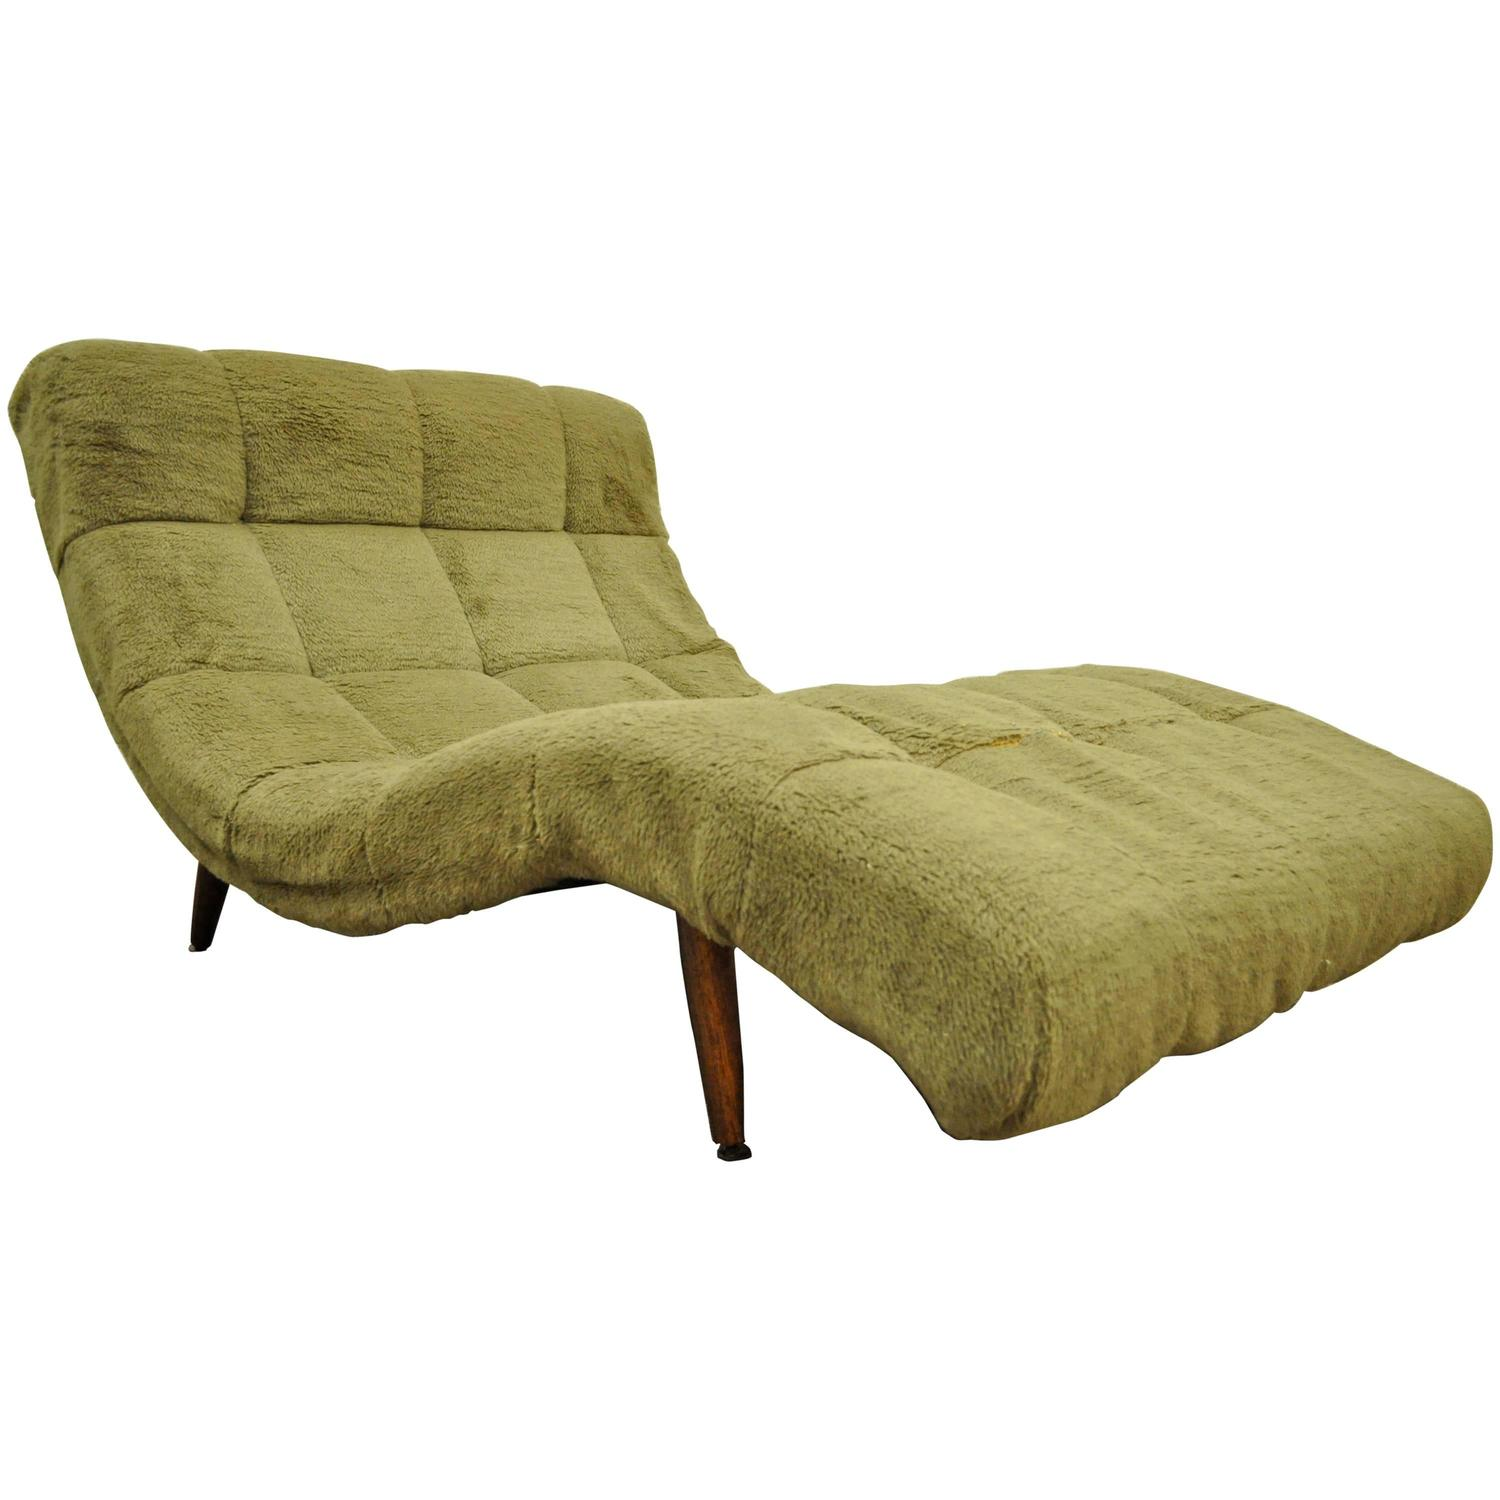 midcentury modern double wide wave chaise lounge in the style of adrian pearsall for sale at 1stdibs. Black Bedroom Furniture Sets. Home Design Ideas